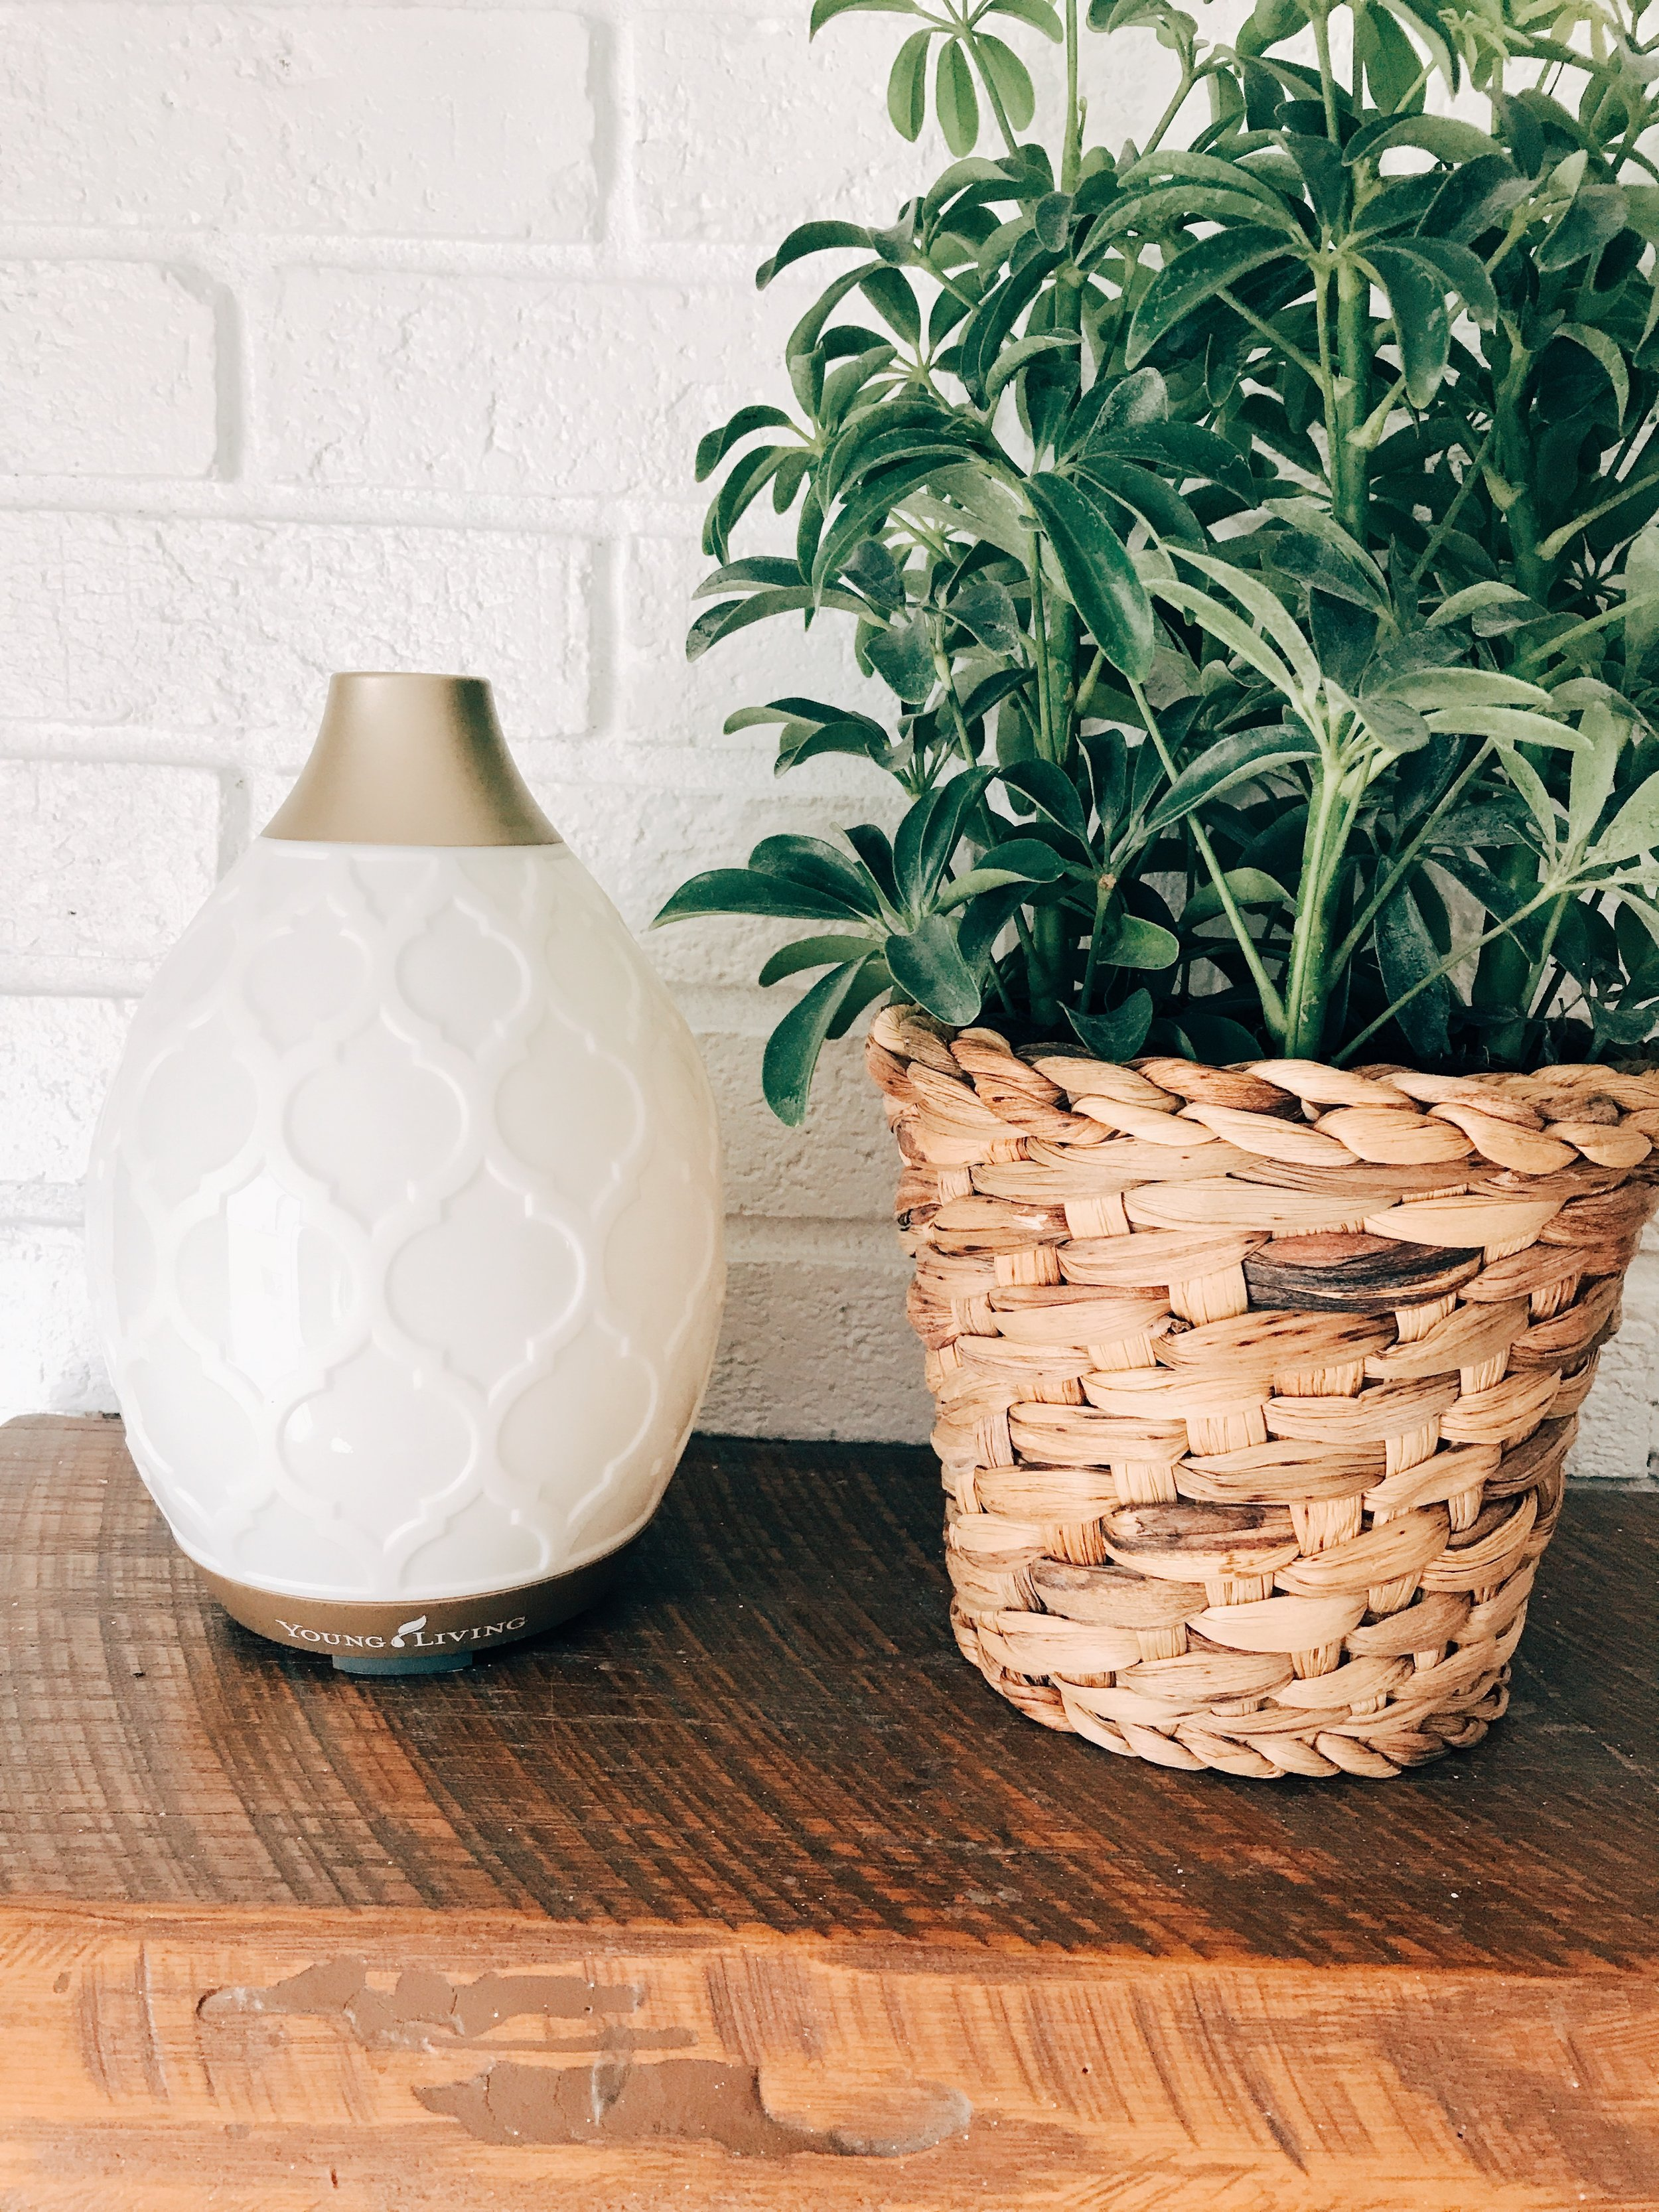 How pretty and farmhouse chic is this desert mist diffuser? It has several mood lighting features too ;)